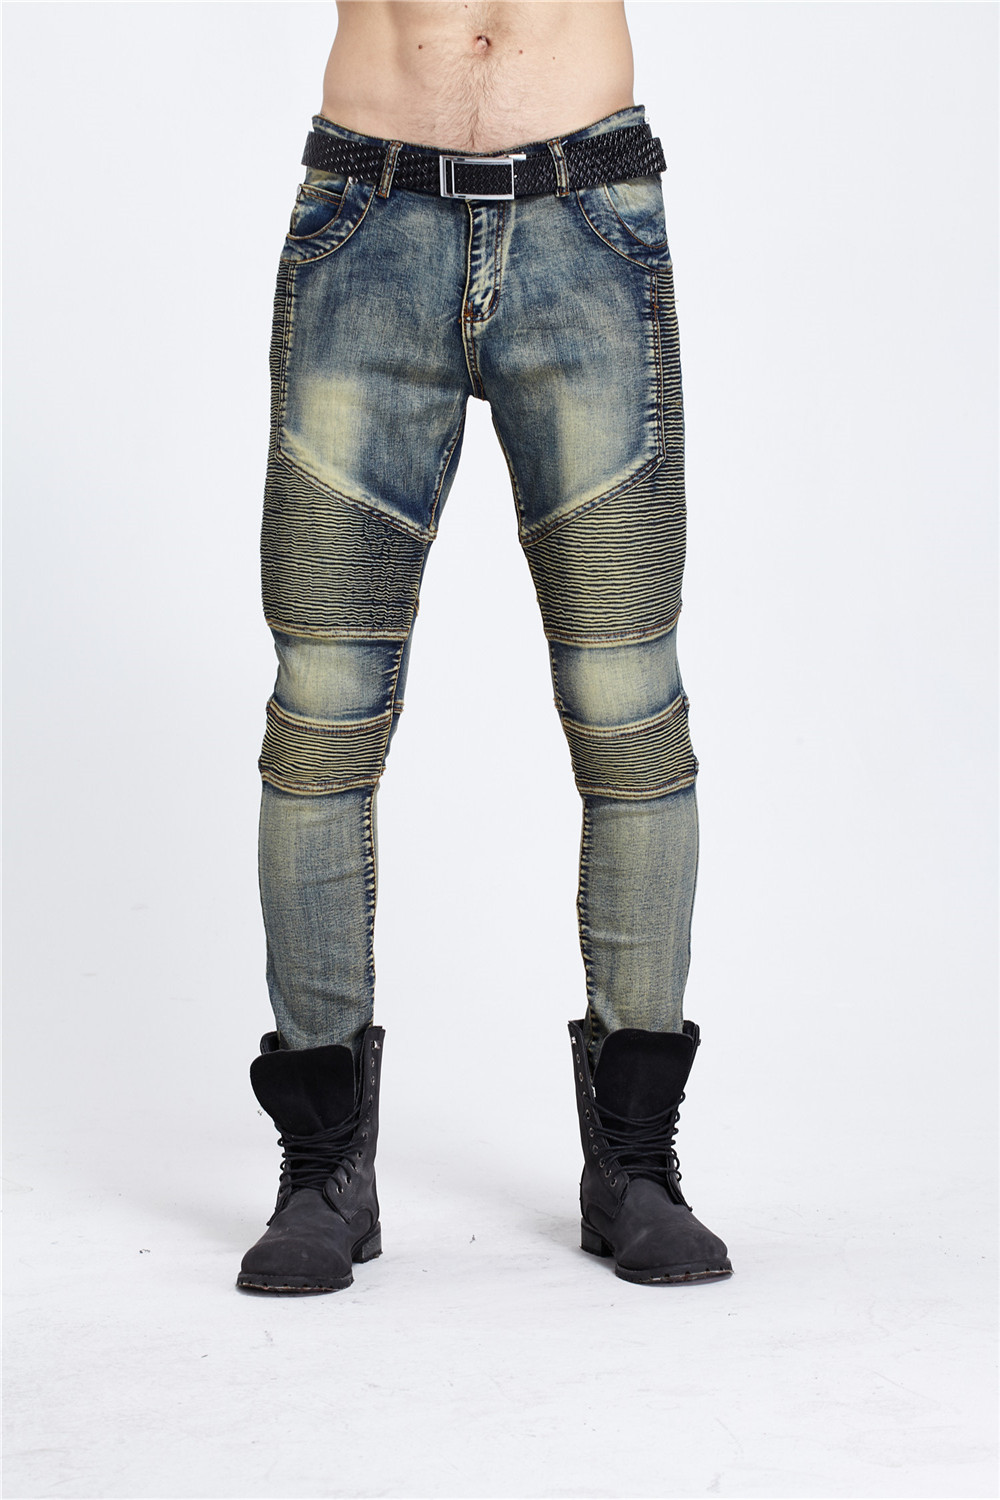 Mens Fashion Casual Classic Washed Pleated Jean Good Quality Slim Fit Moto Skinny Jeans for men blueОдежда и ак�е��уары<br><br><br>Aliexpress